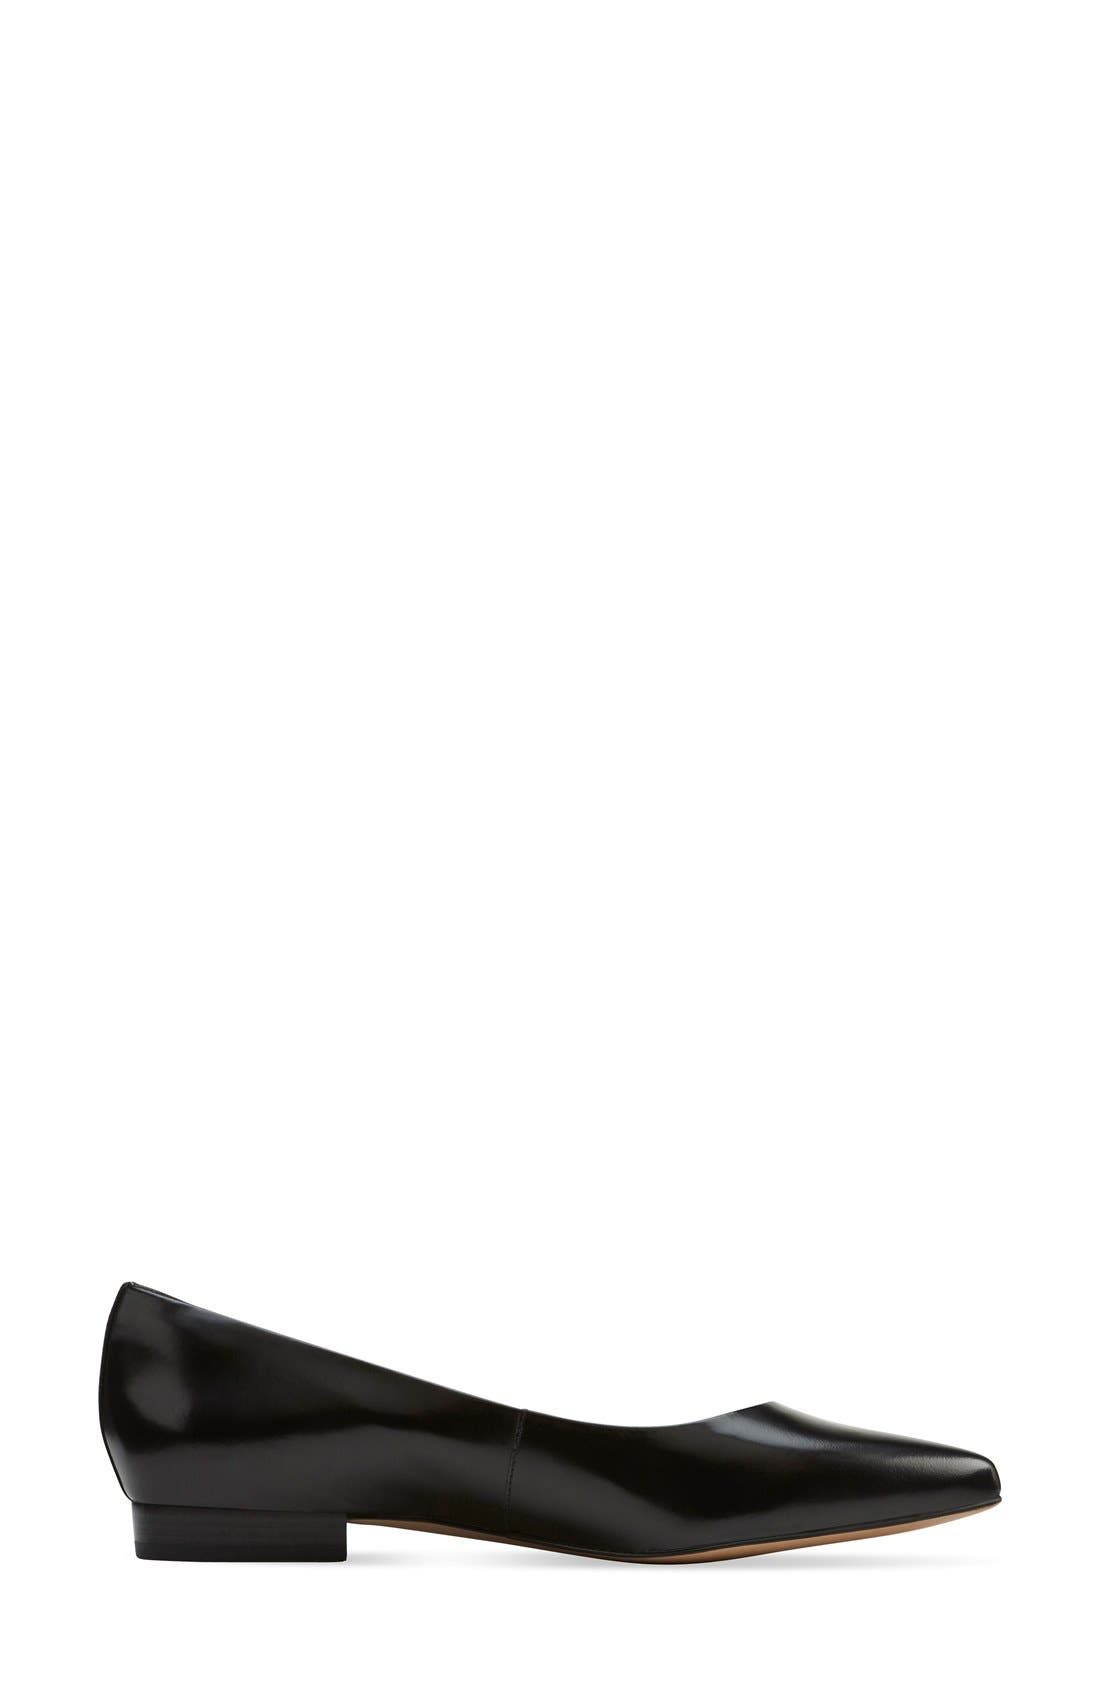 CLARKS<SUP>®</SUP>,                             'Corabeth Abby' Pointy Toe Flat,                             Alternate thumbnail 4, color,                             003